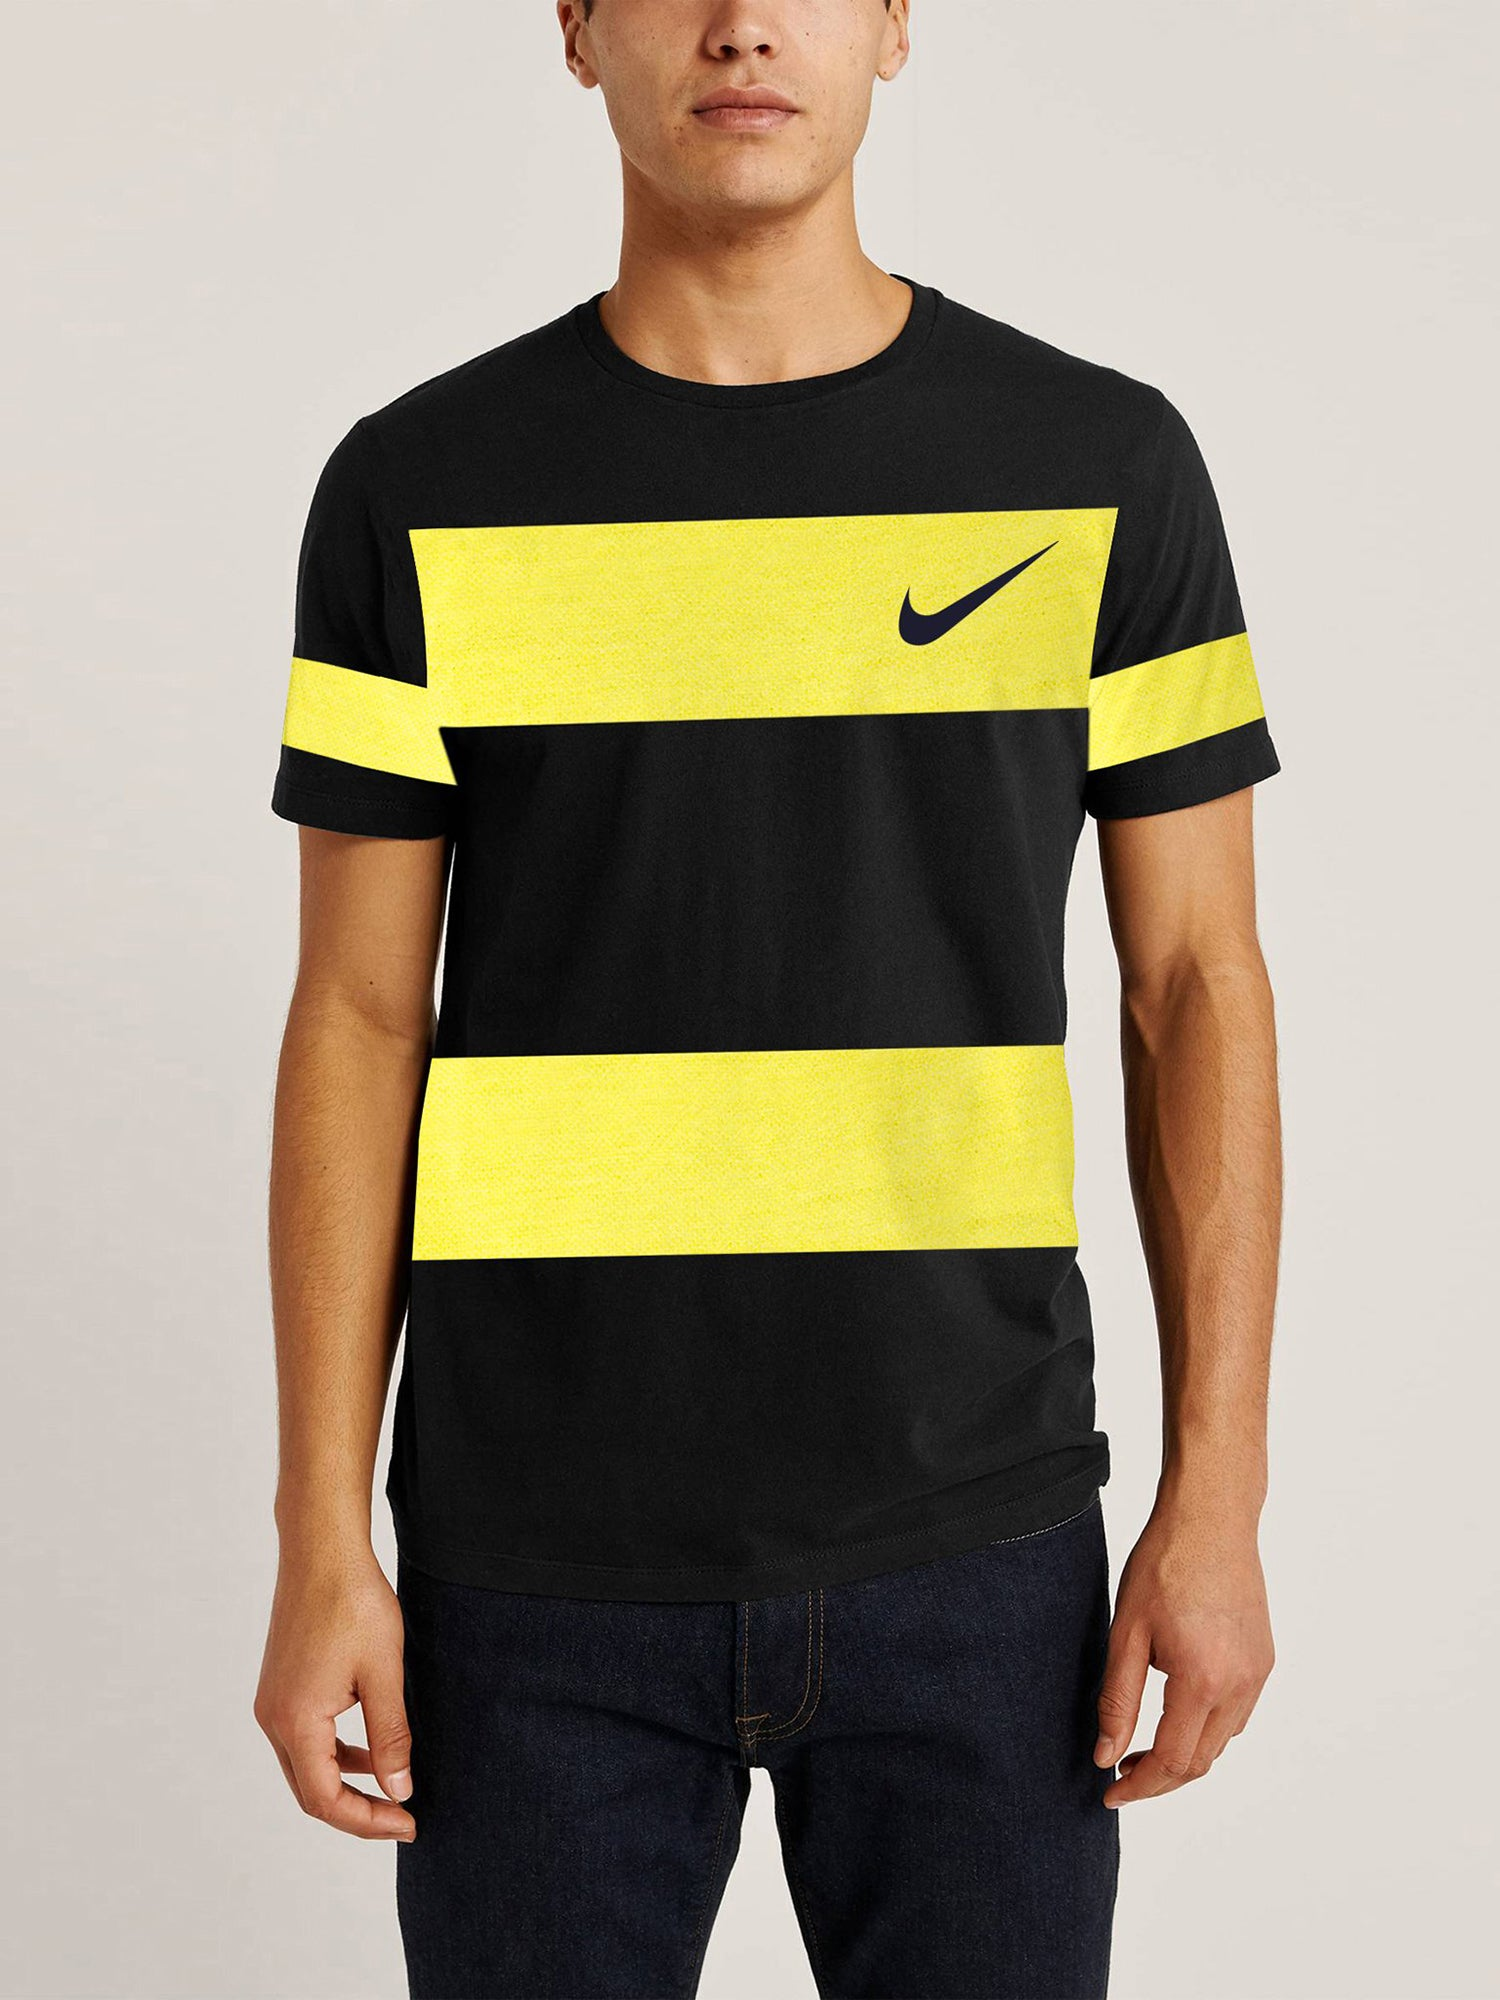 NK Summer Crew Neck Tee Shirt For Men-Black & Yellow Panel-NA11469